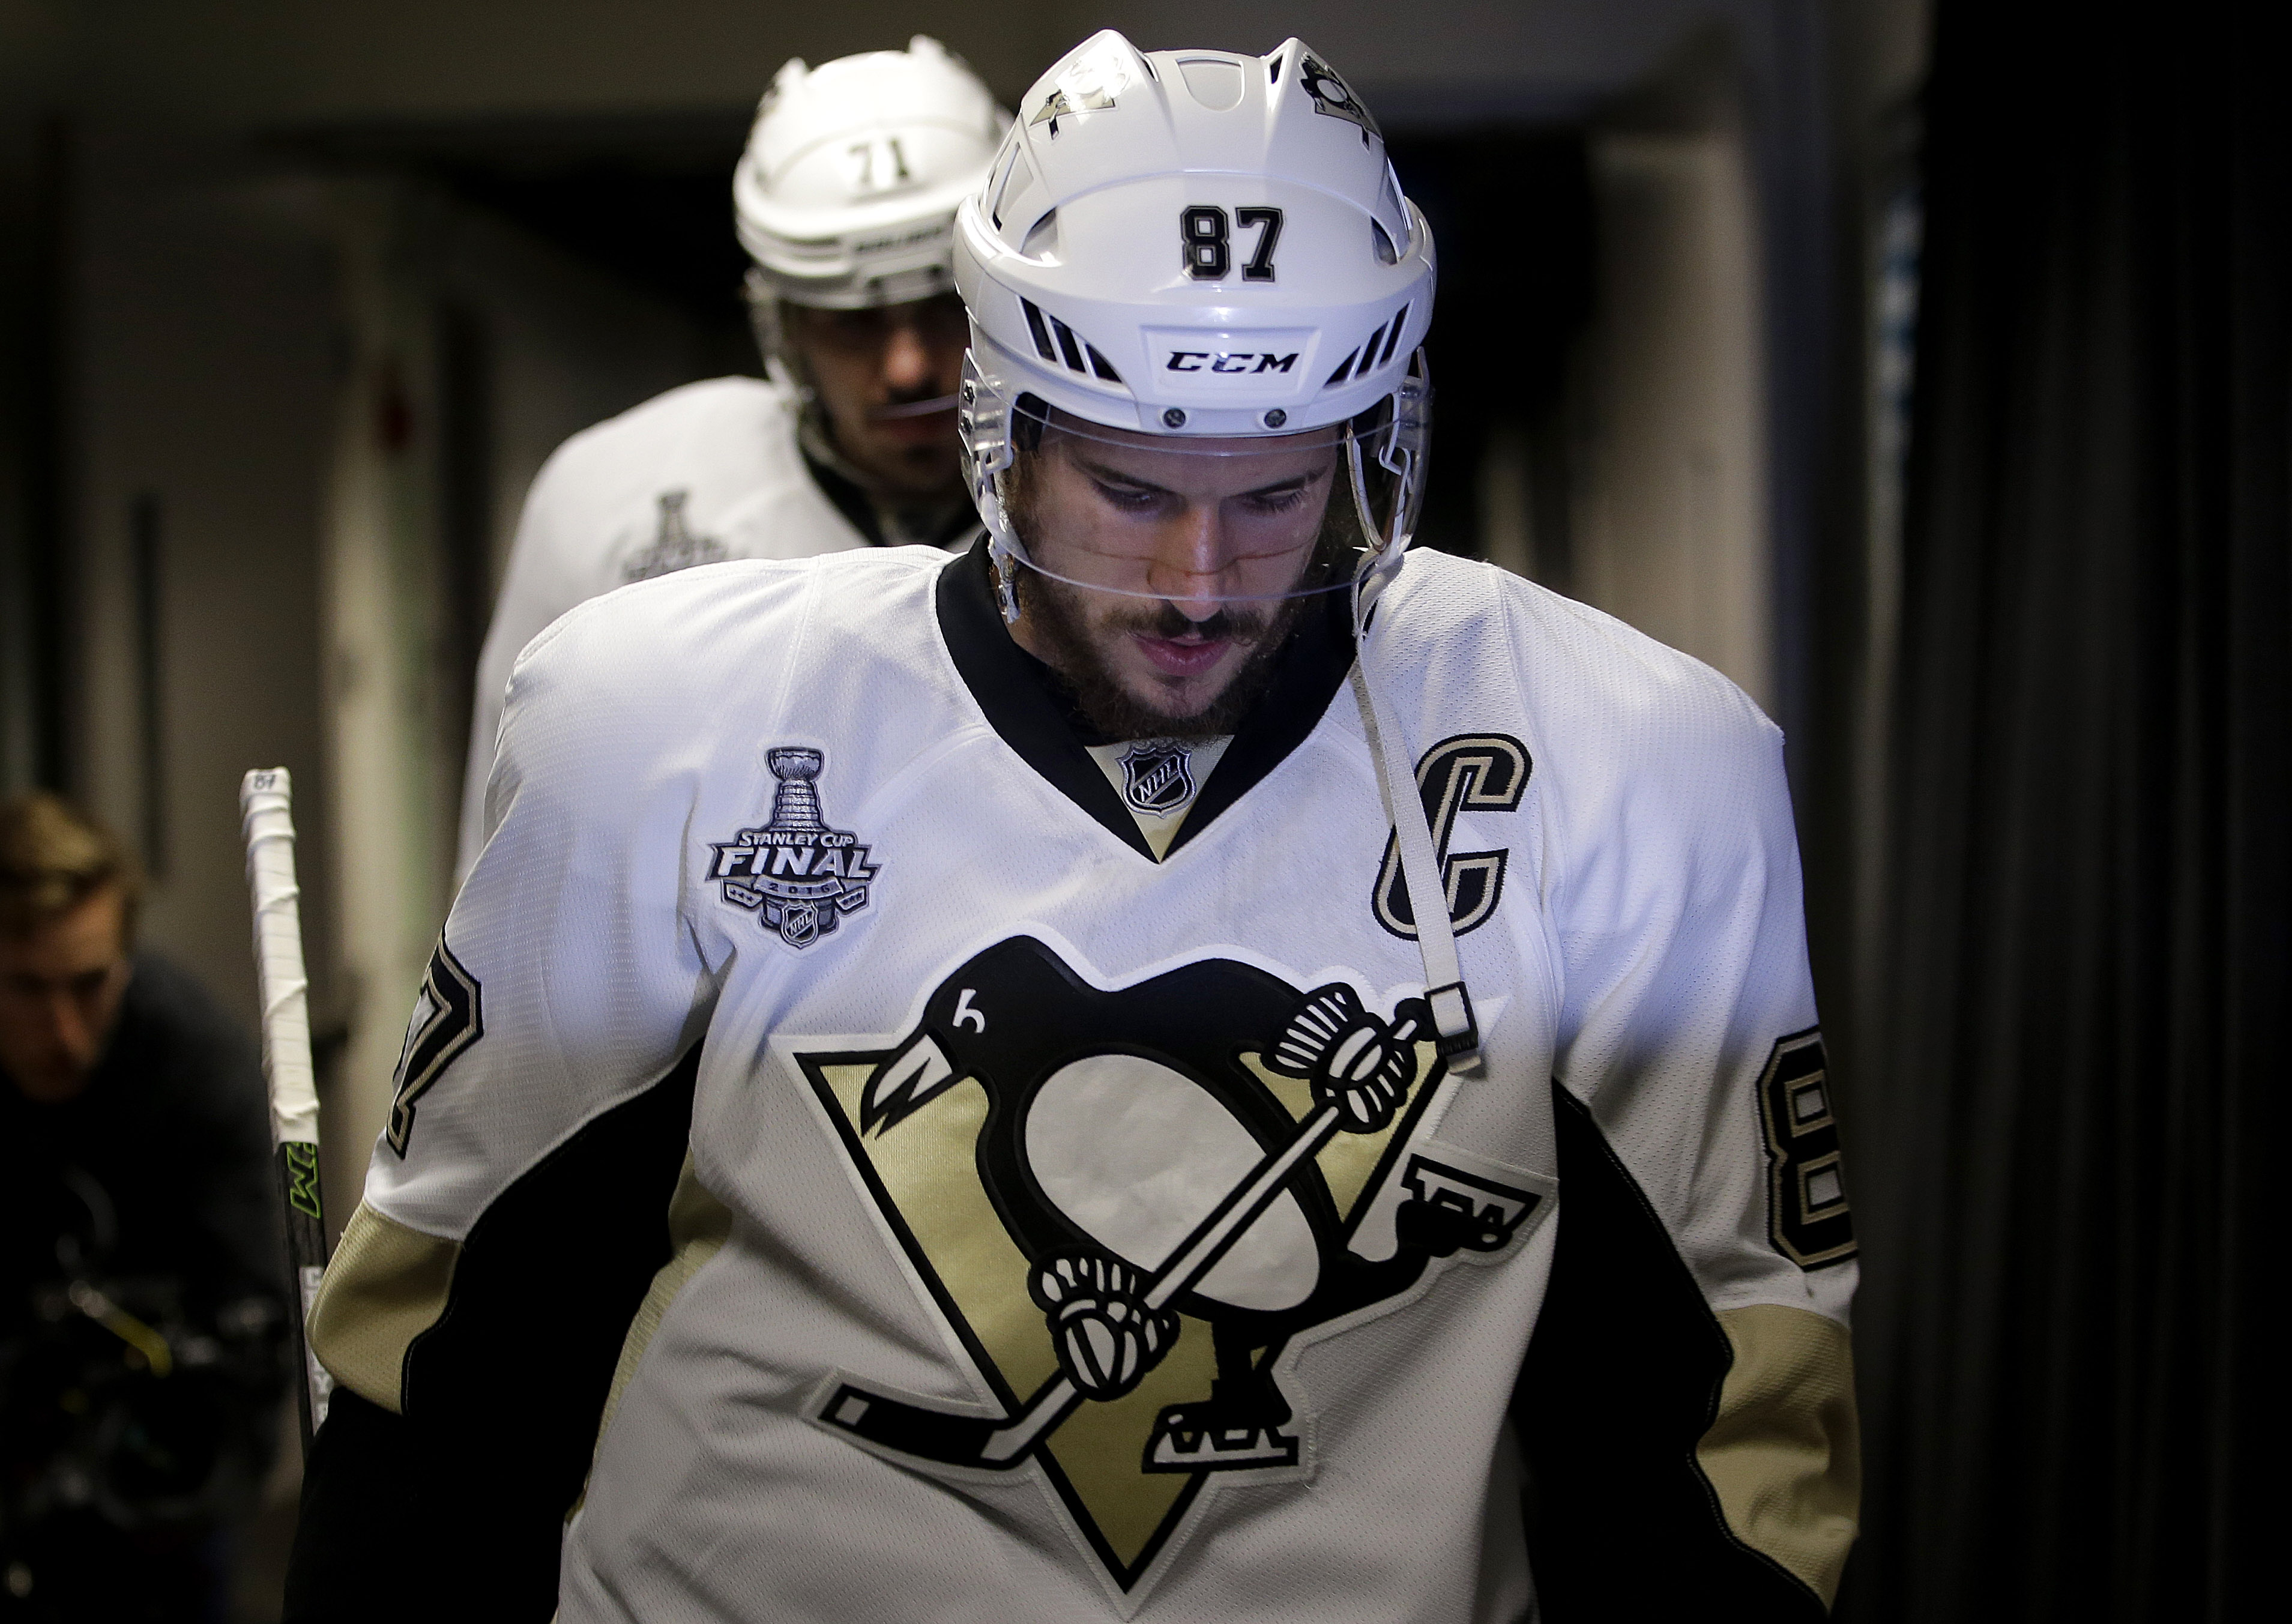 Pittsburgh Penguins center Sidney Crosby walks out to the ice before Game 6 of the NHL hockey Stanley Cup Finals between the San Jose Sharks and the Penguins in San Jose, Calif., Sunday, June 12, 2016. (AP Photo/Marcio Jose Sanchez)